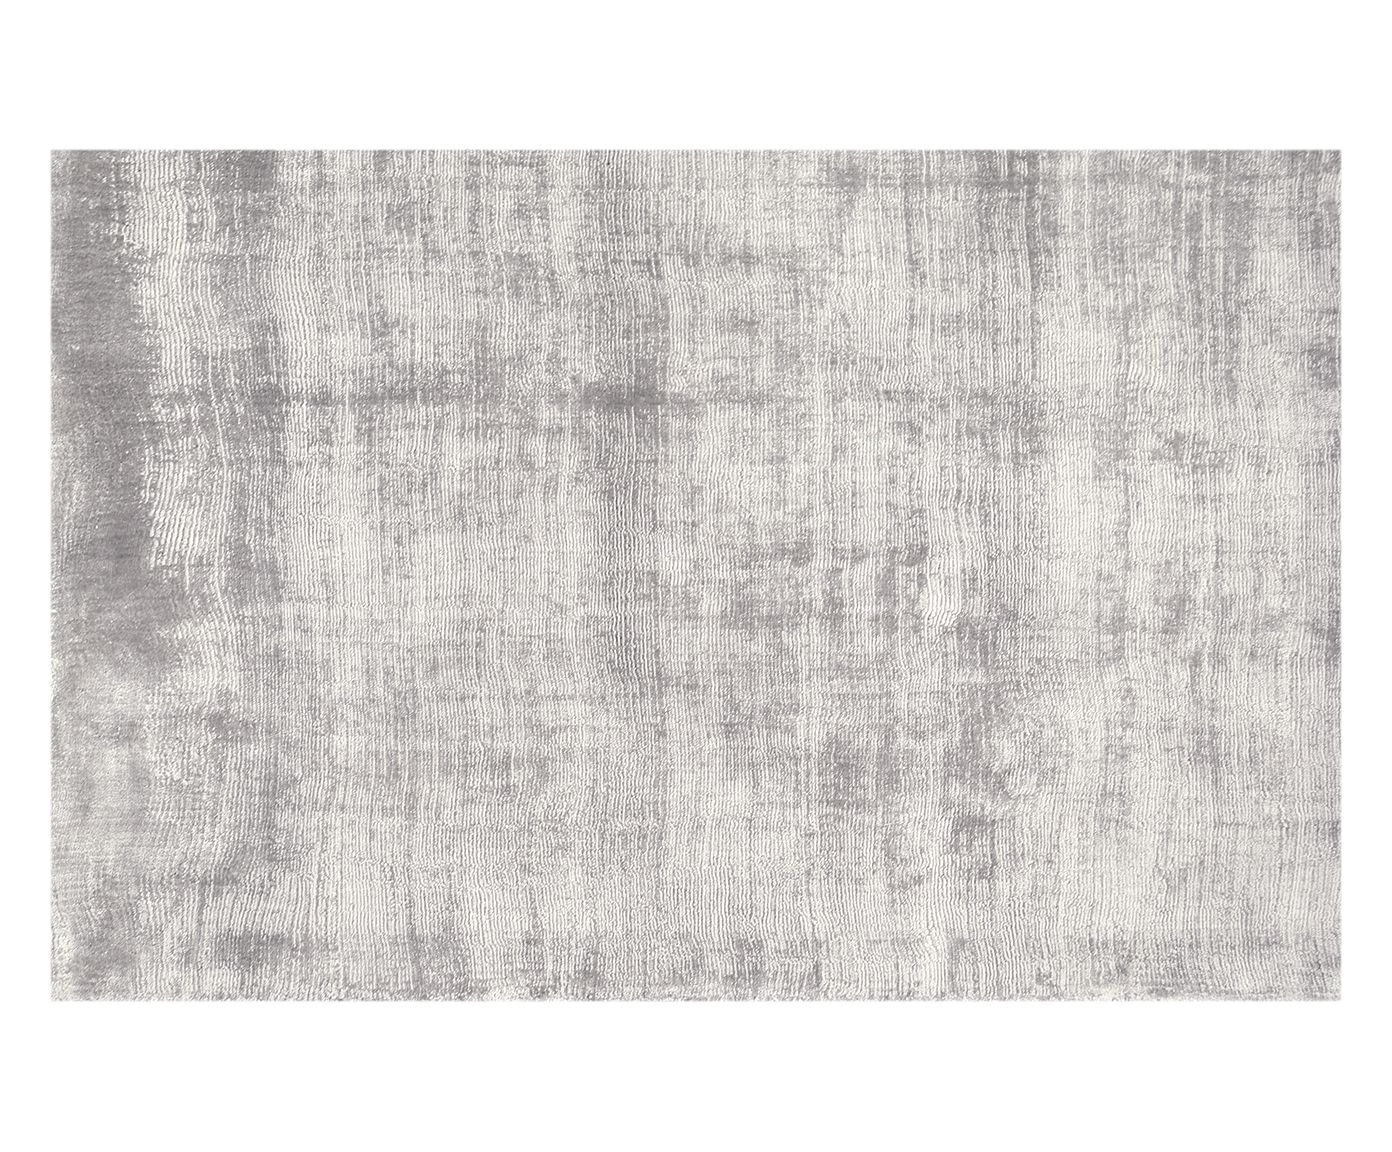 Tapete Indiano Seaburry Cinza - 200X250cm | Westwing.com.br